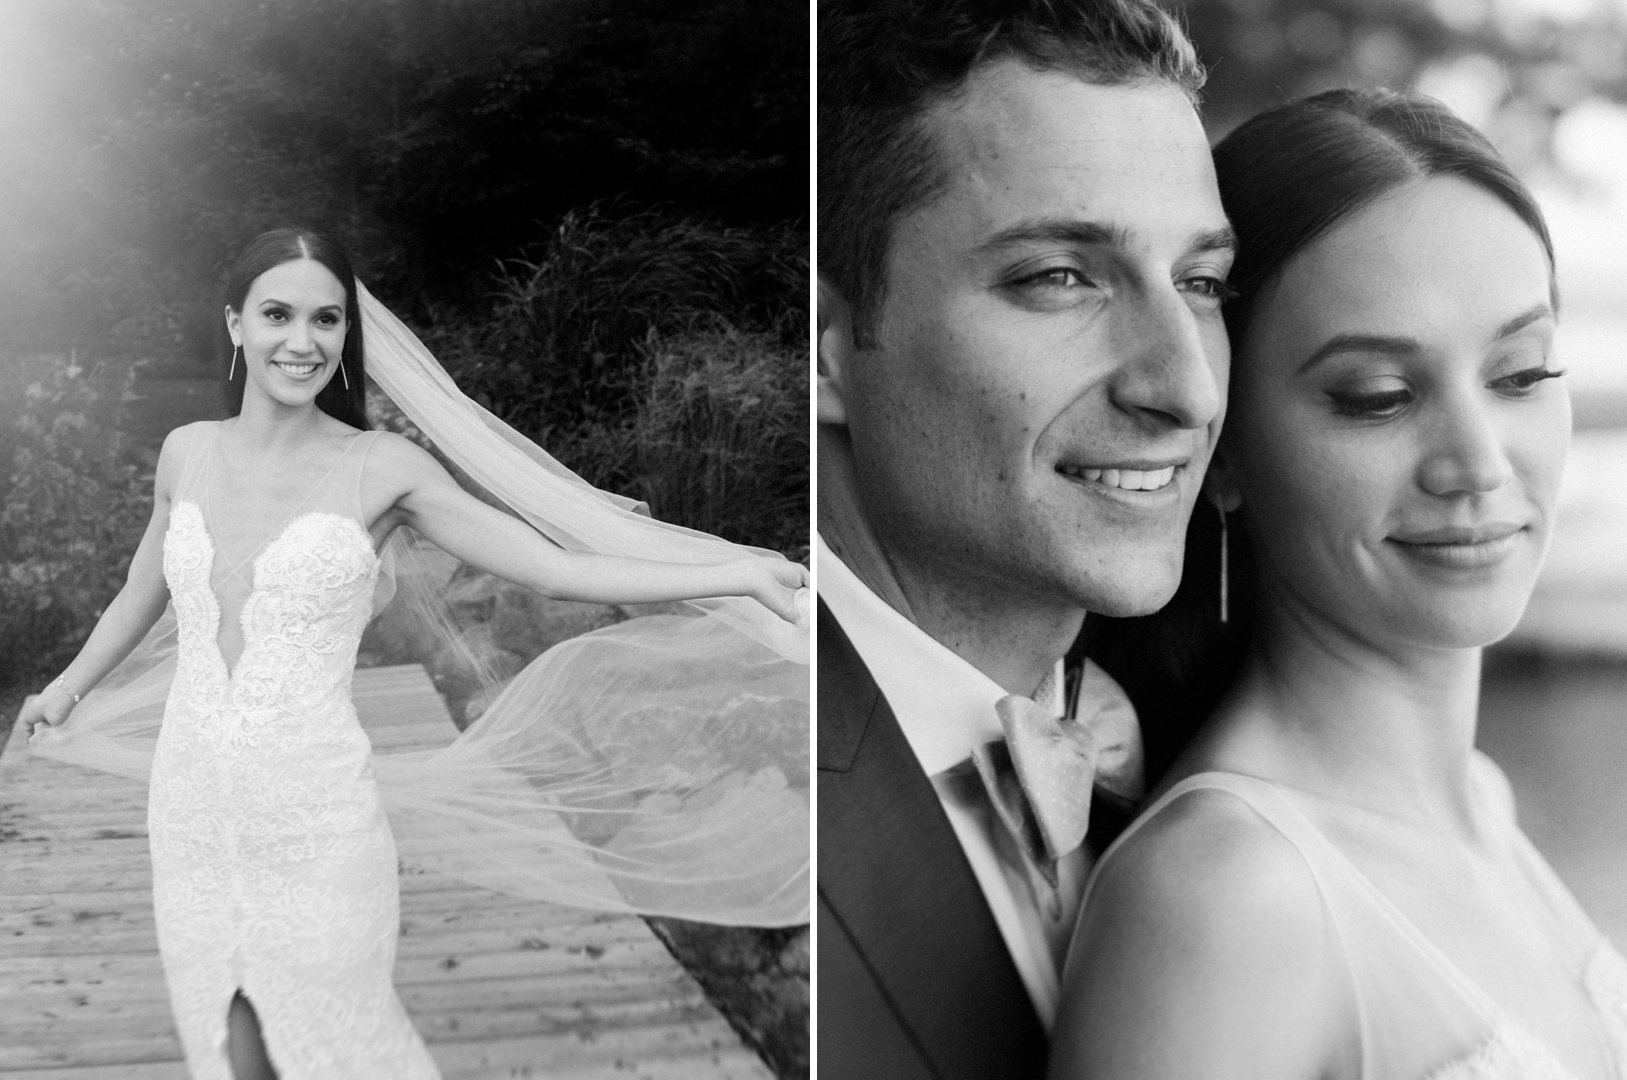 Manoir Hovey bride and groom portraits by the lake.jpg